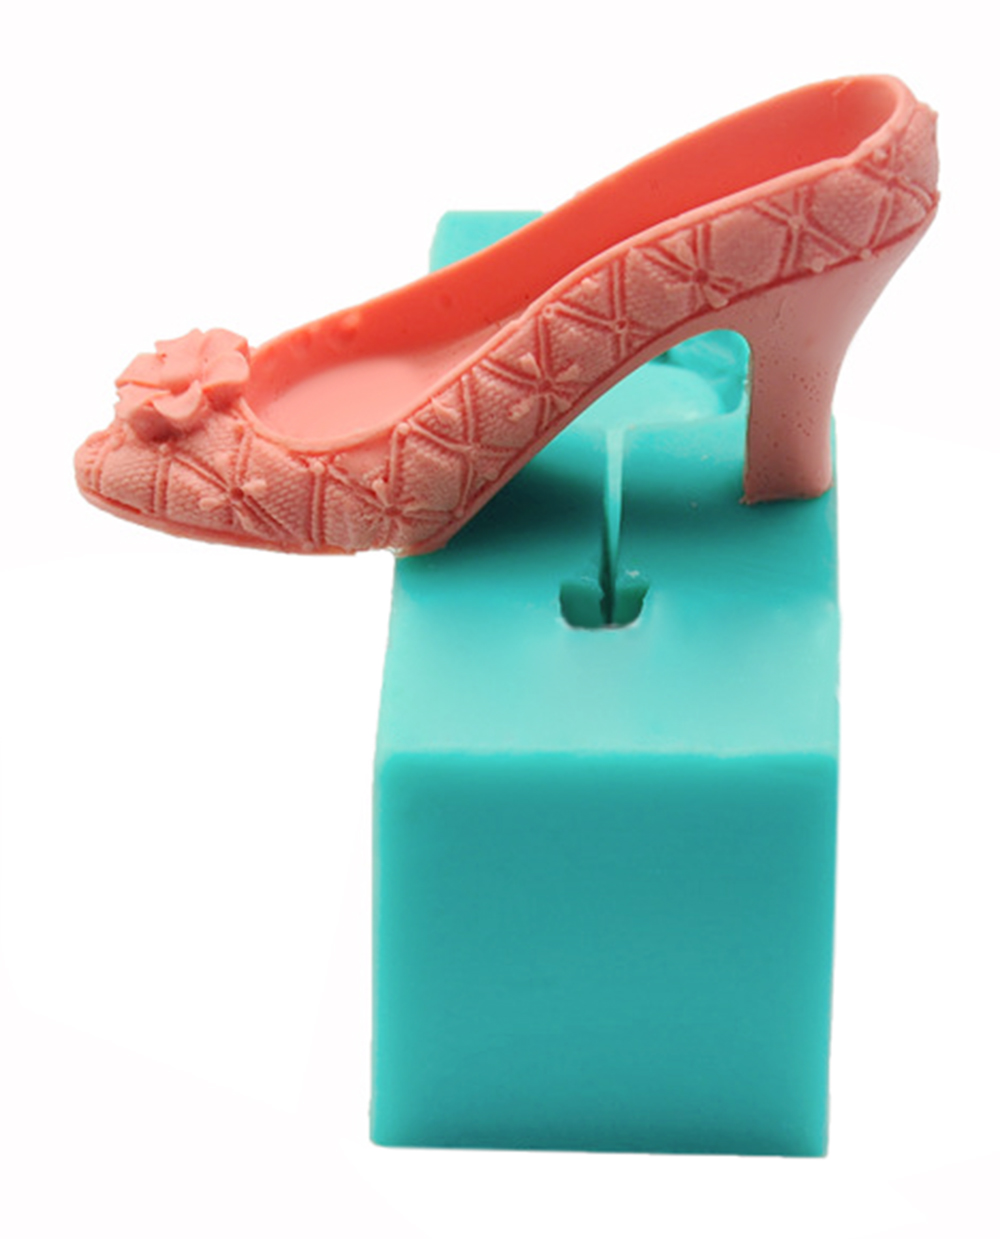 3D Food Grade High-heeled Shoes Silicone Bakerware Mold Kitchen Tool